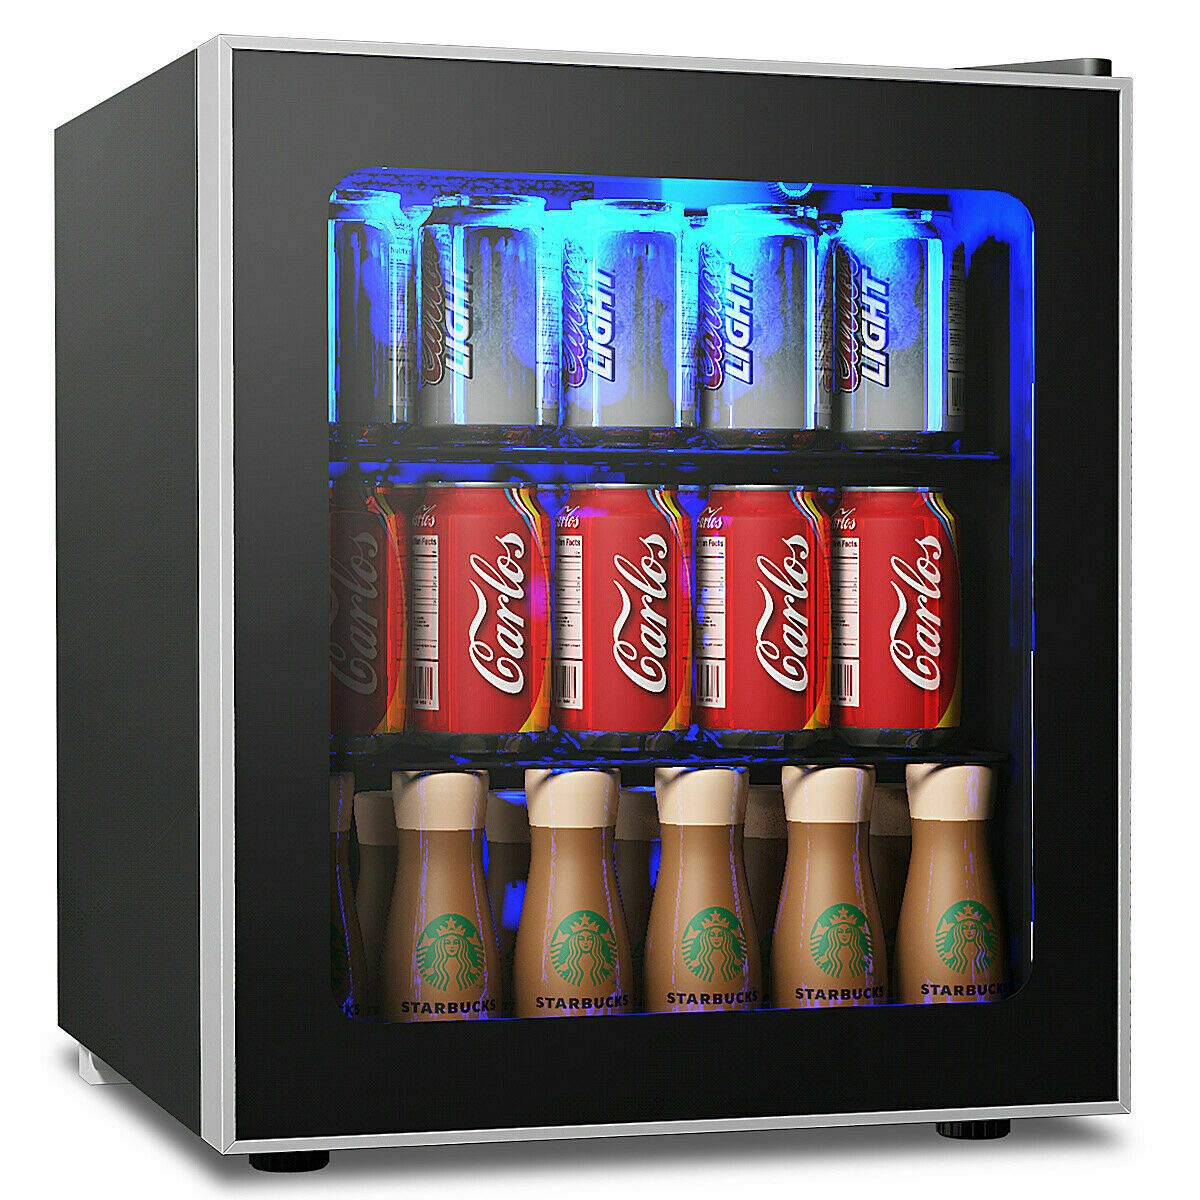 COSTWAY Beverage Refrigerator and Cooler, 60 Can Mini Fridge, Adjustable Removable Shelves, Perfect for Soda Beer or Wine Small Drink Dispenser Machine for Office or Bar (17.5'' x 18'' x 19.5'')